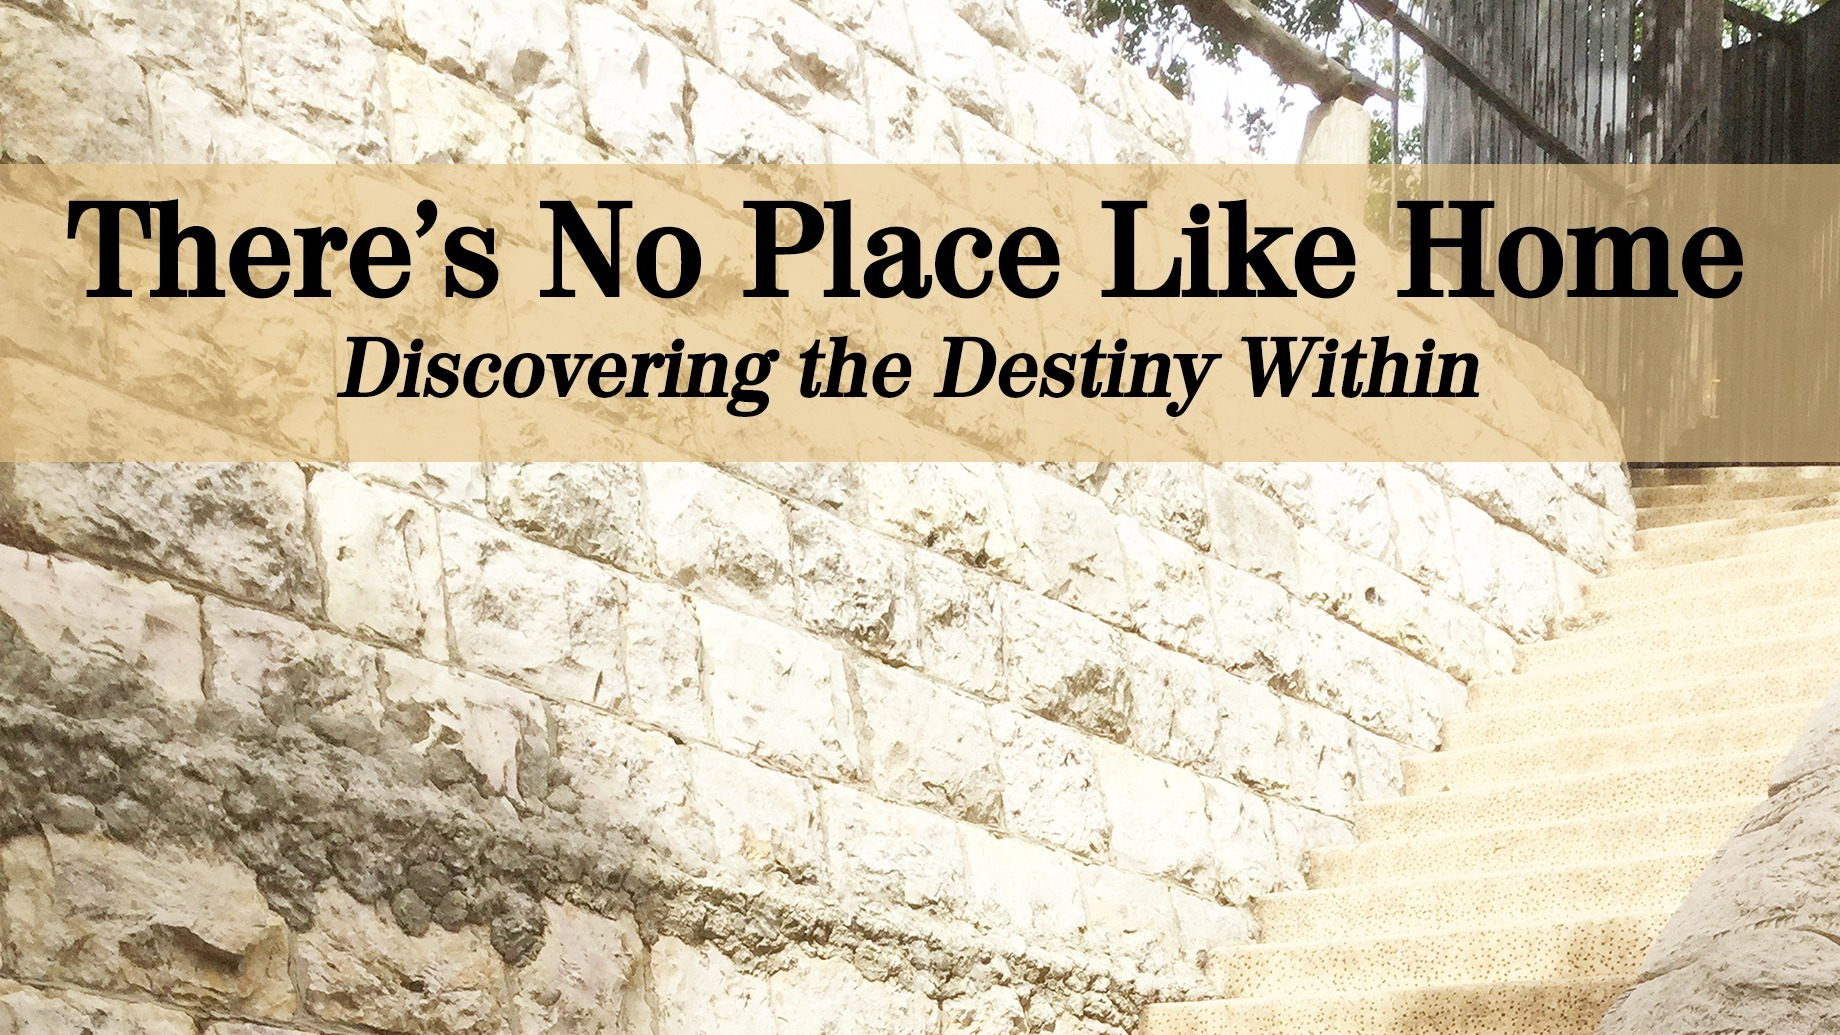 There's No Place Like Home: Discovering the Destiny Within